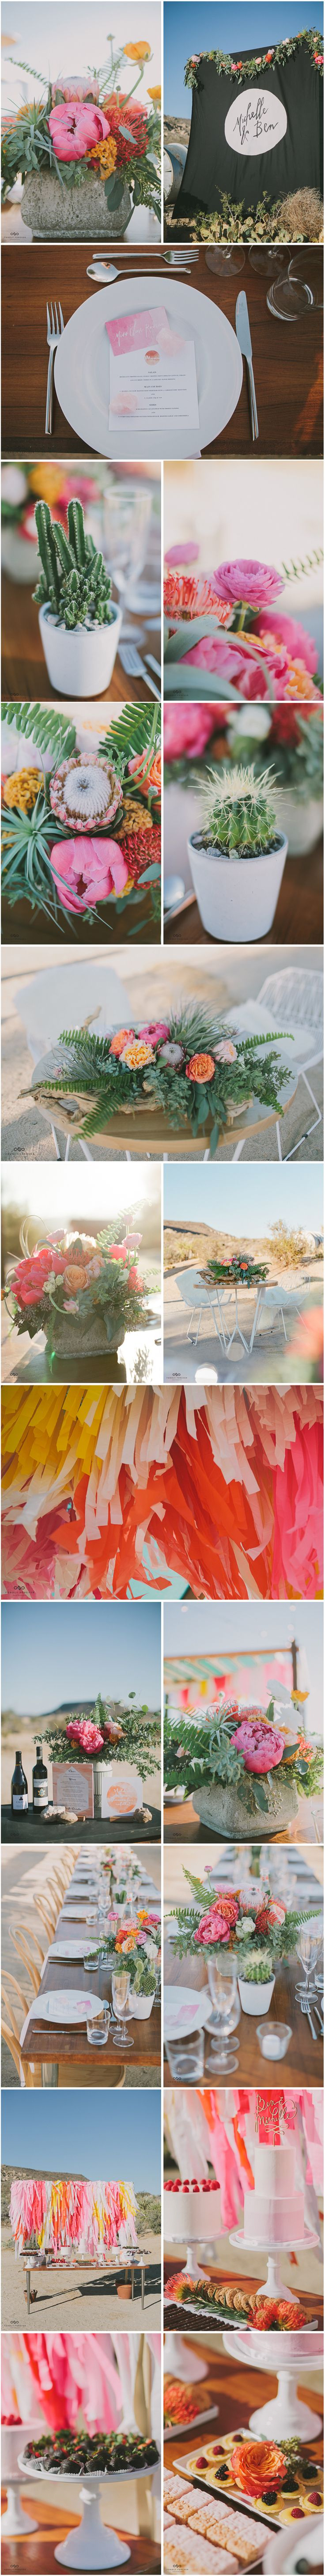 Beautiful table flowers (and cacti), and a fun, colorful streamer backdrop for the dessert table.